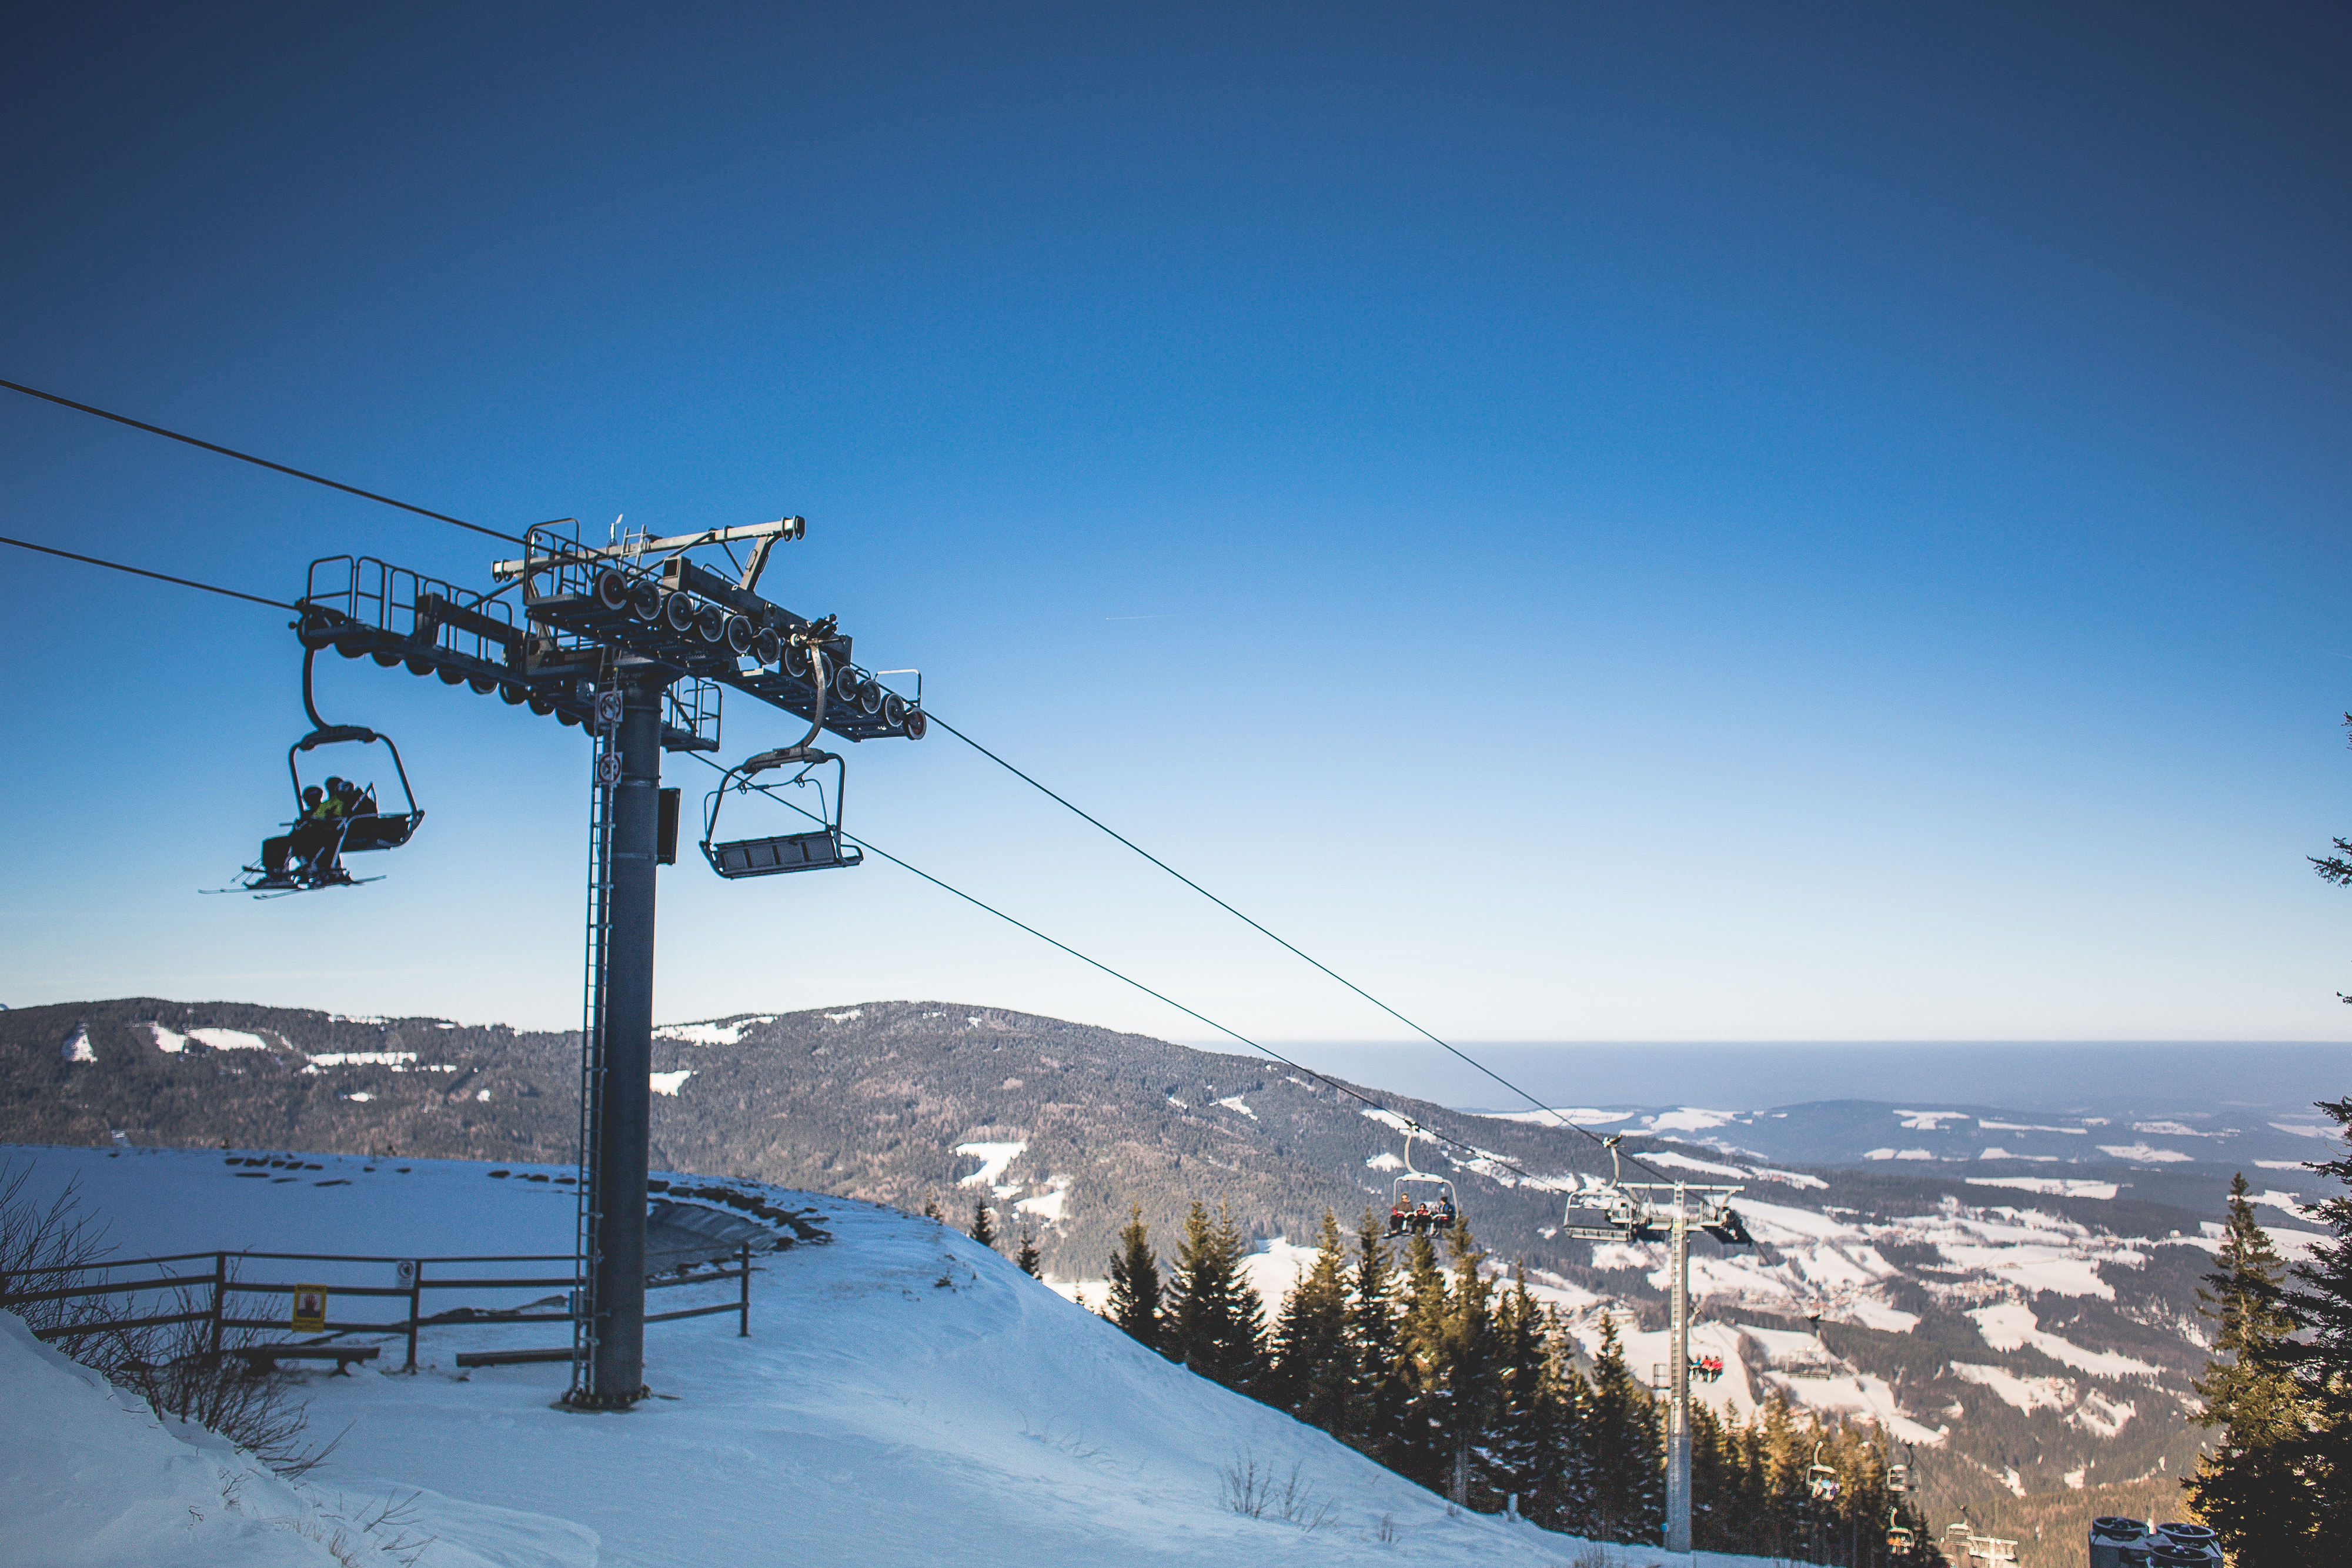 Recent Ski Resort Acquisitions Bring Park City's ONE Wasatch Concept Closer to Reality